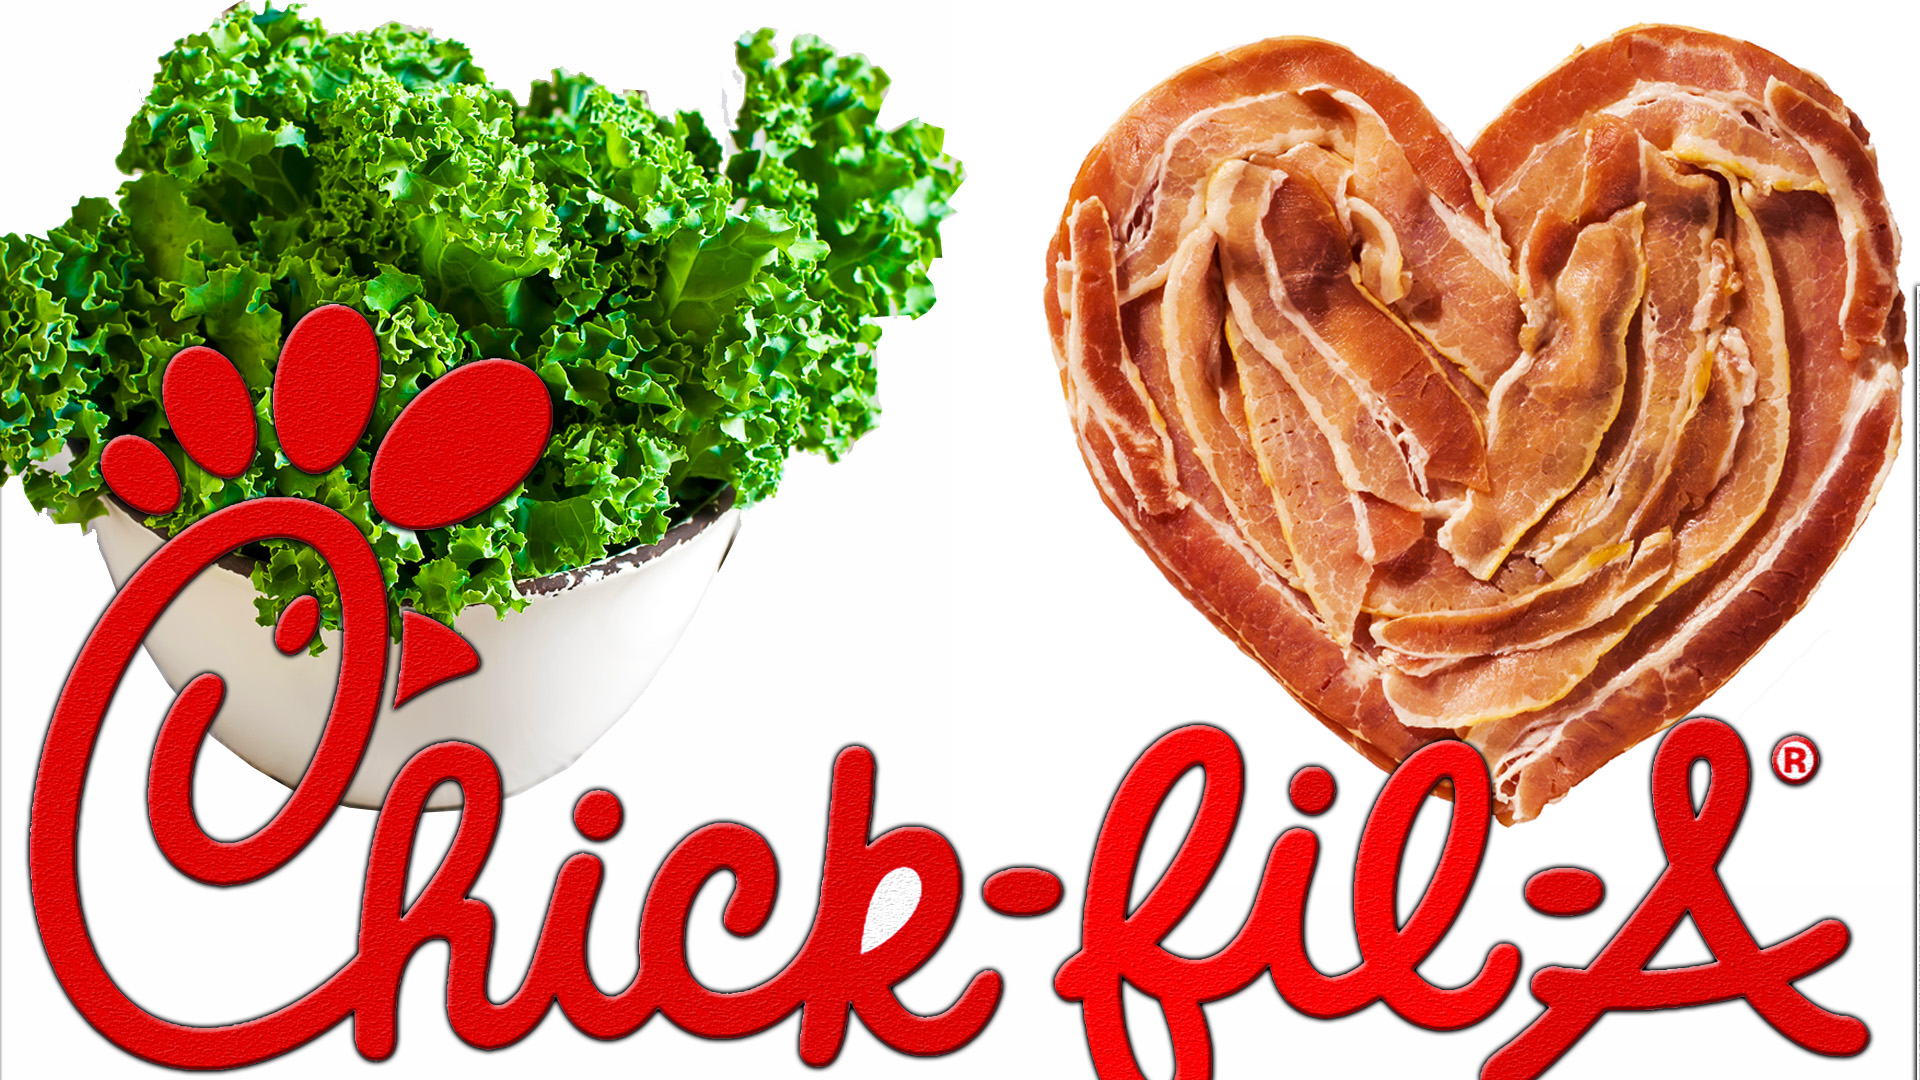 Chick-Fil-A Sets Hipster Trap With New Kale and Bacon Menu Items